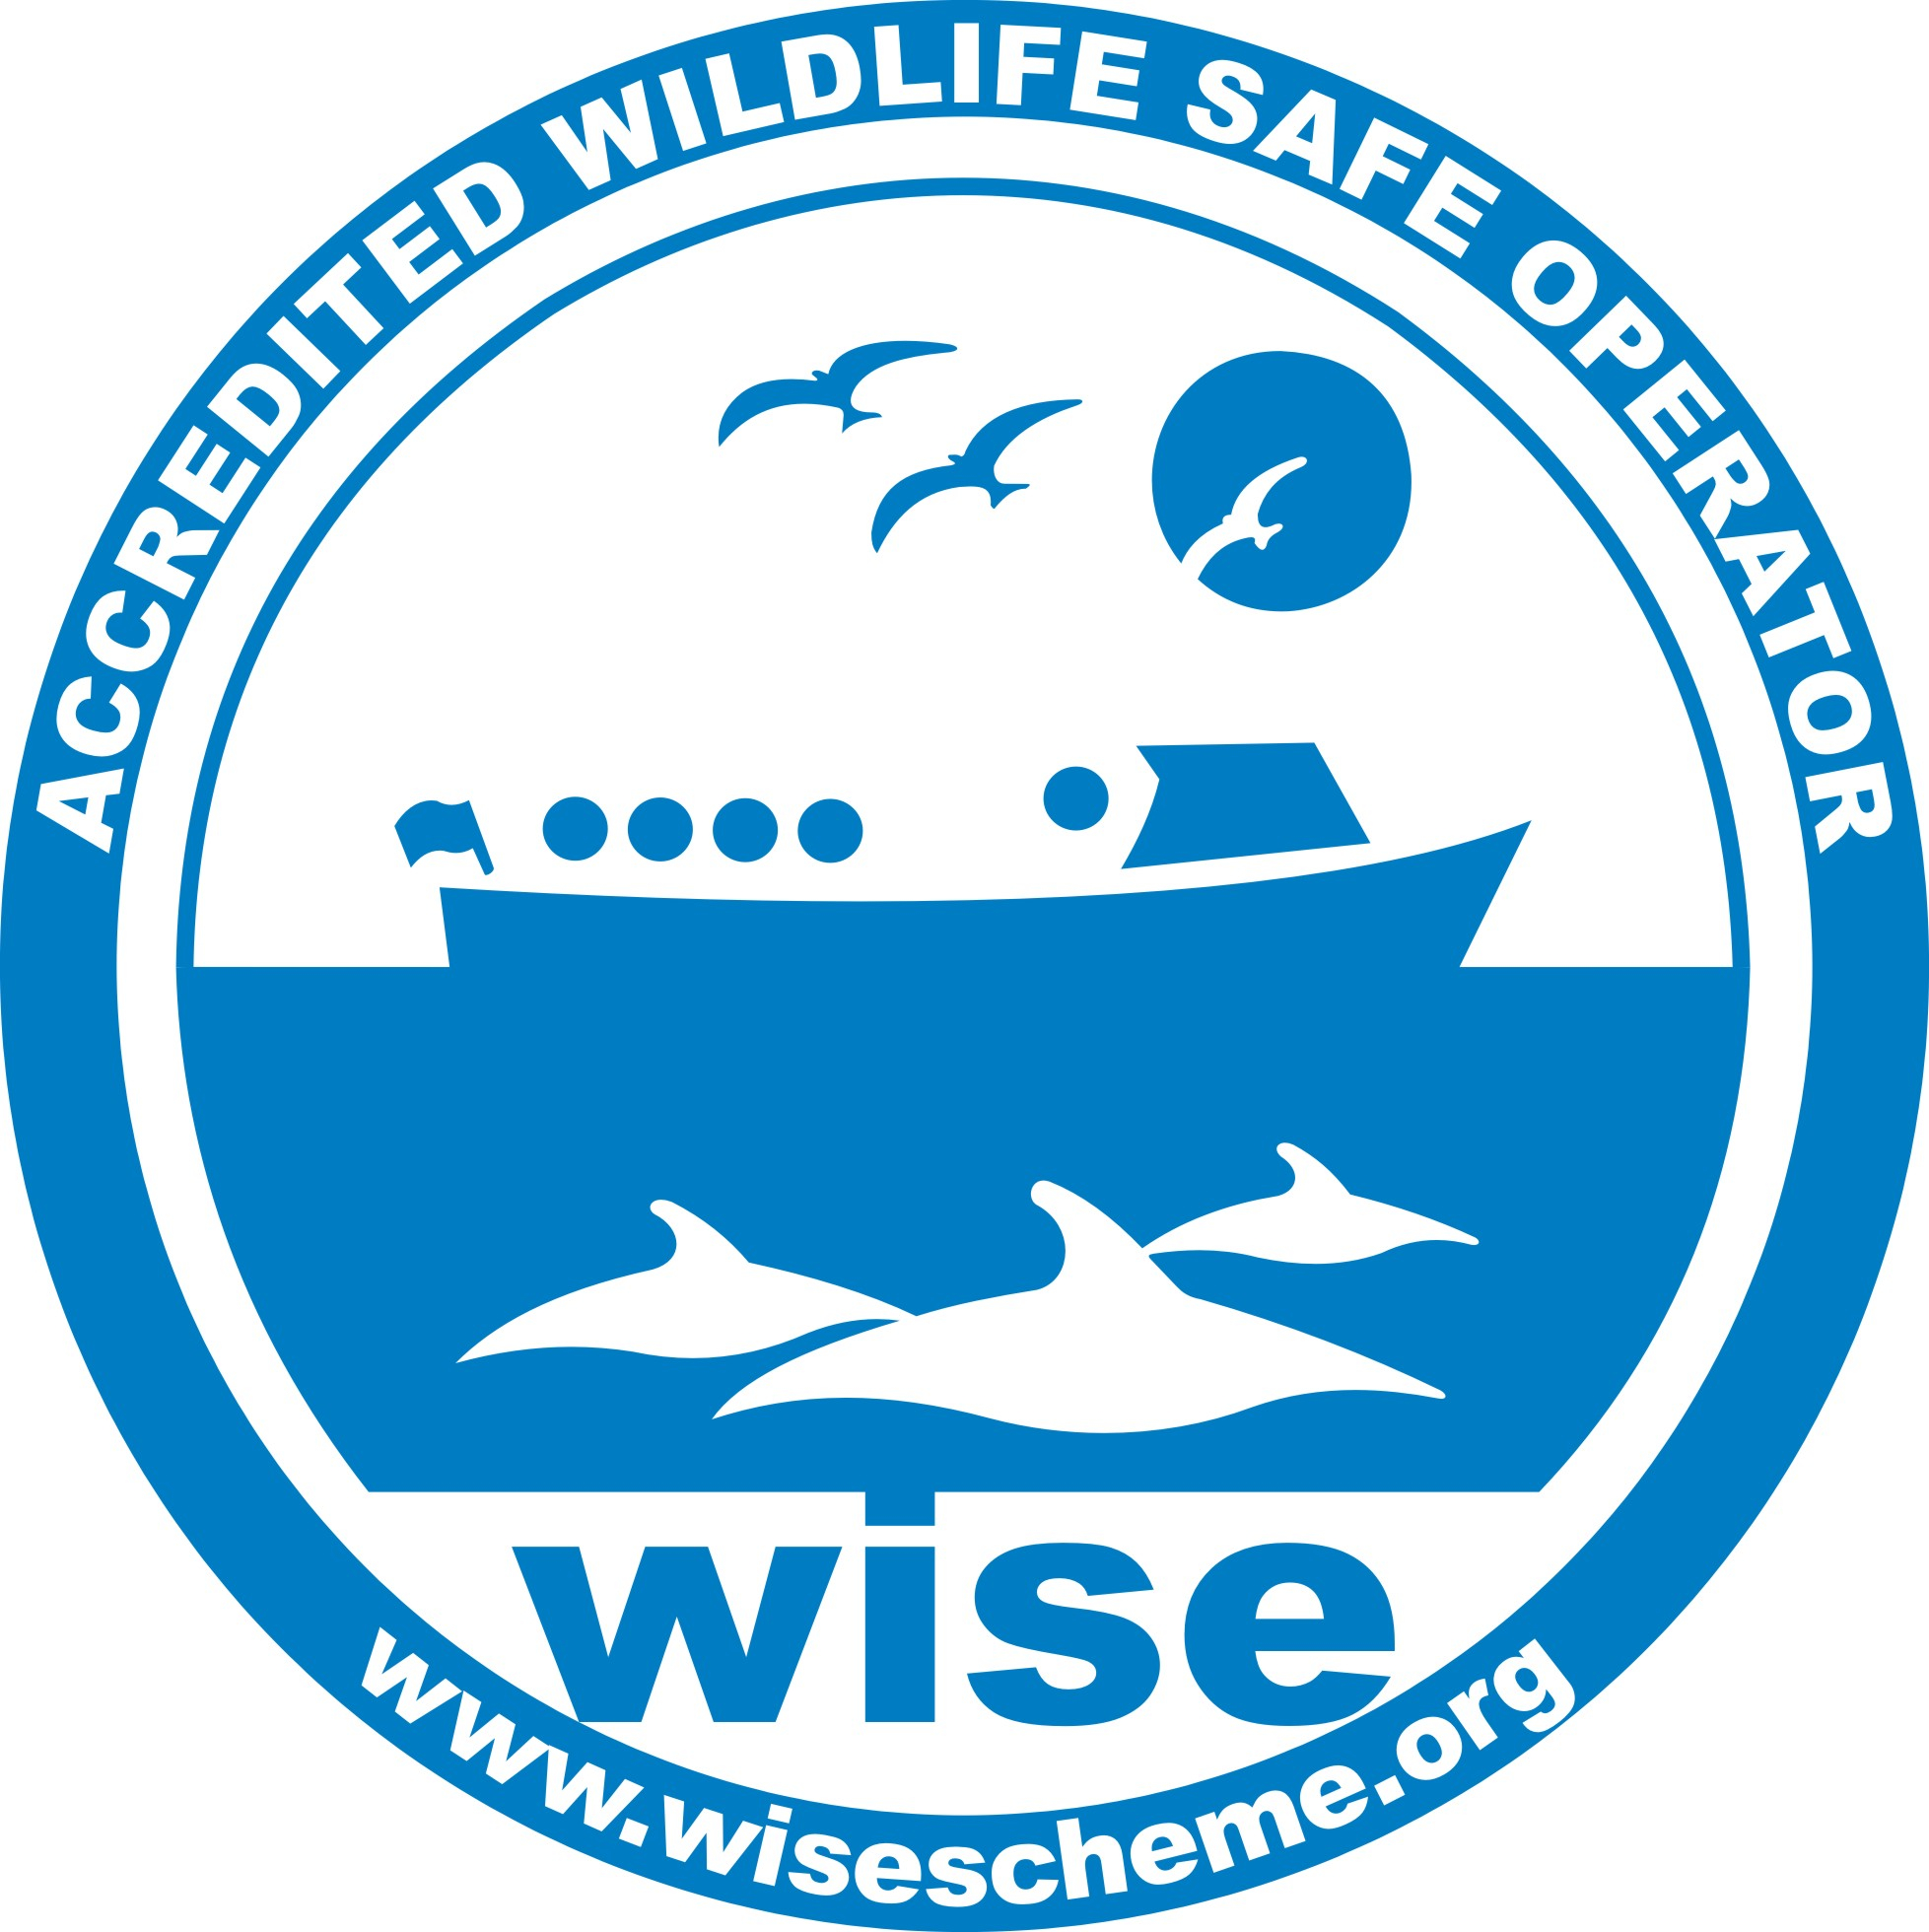 Accredited whale watching vessel